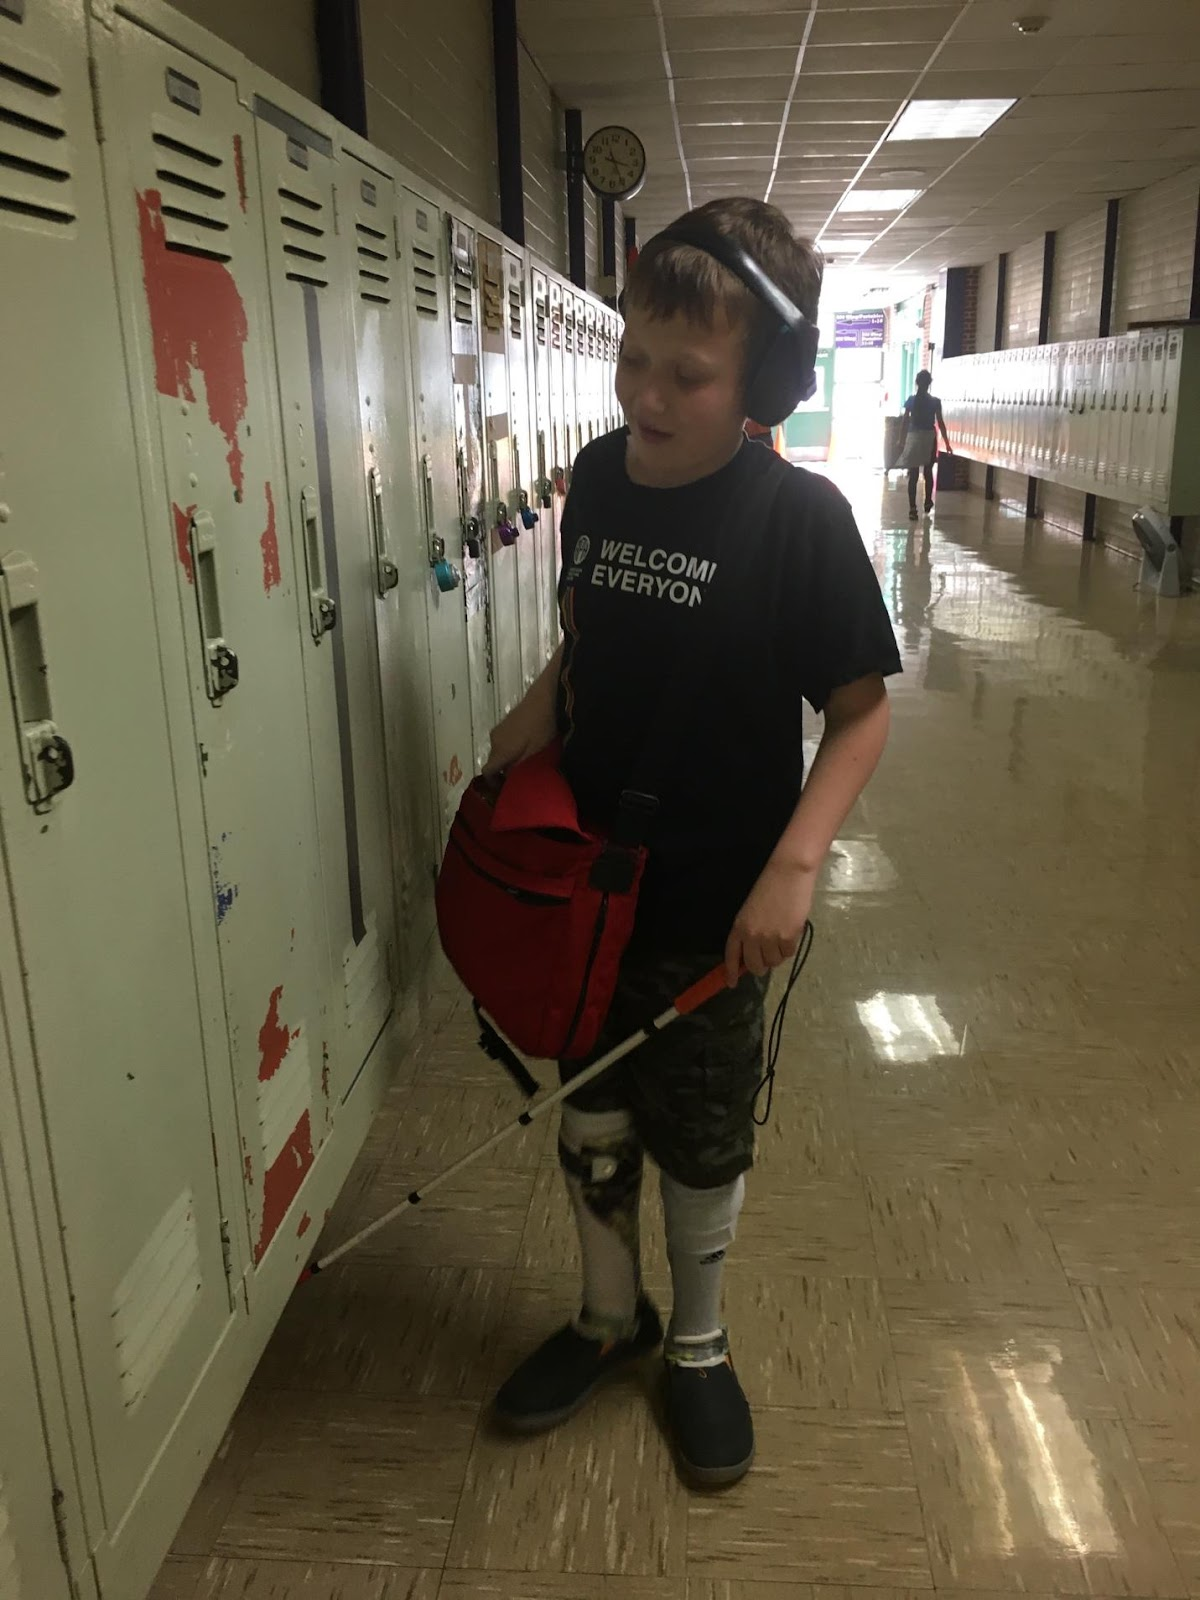 Eddie wears hearing protection and carryies a bookbag while using a cane to navigate a hallway full of lockers at school